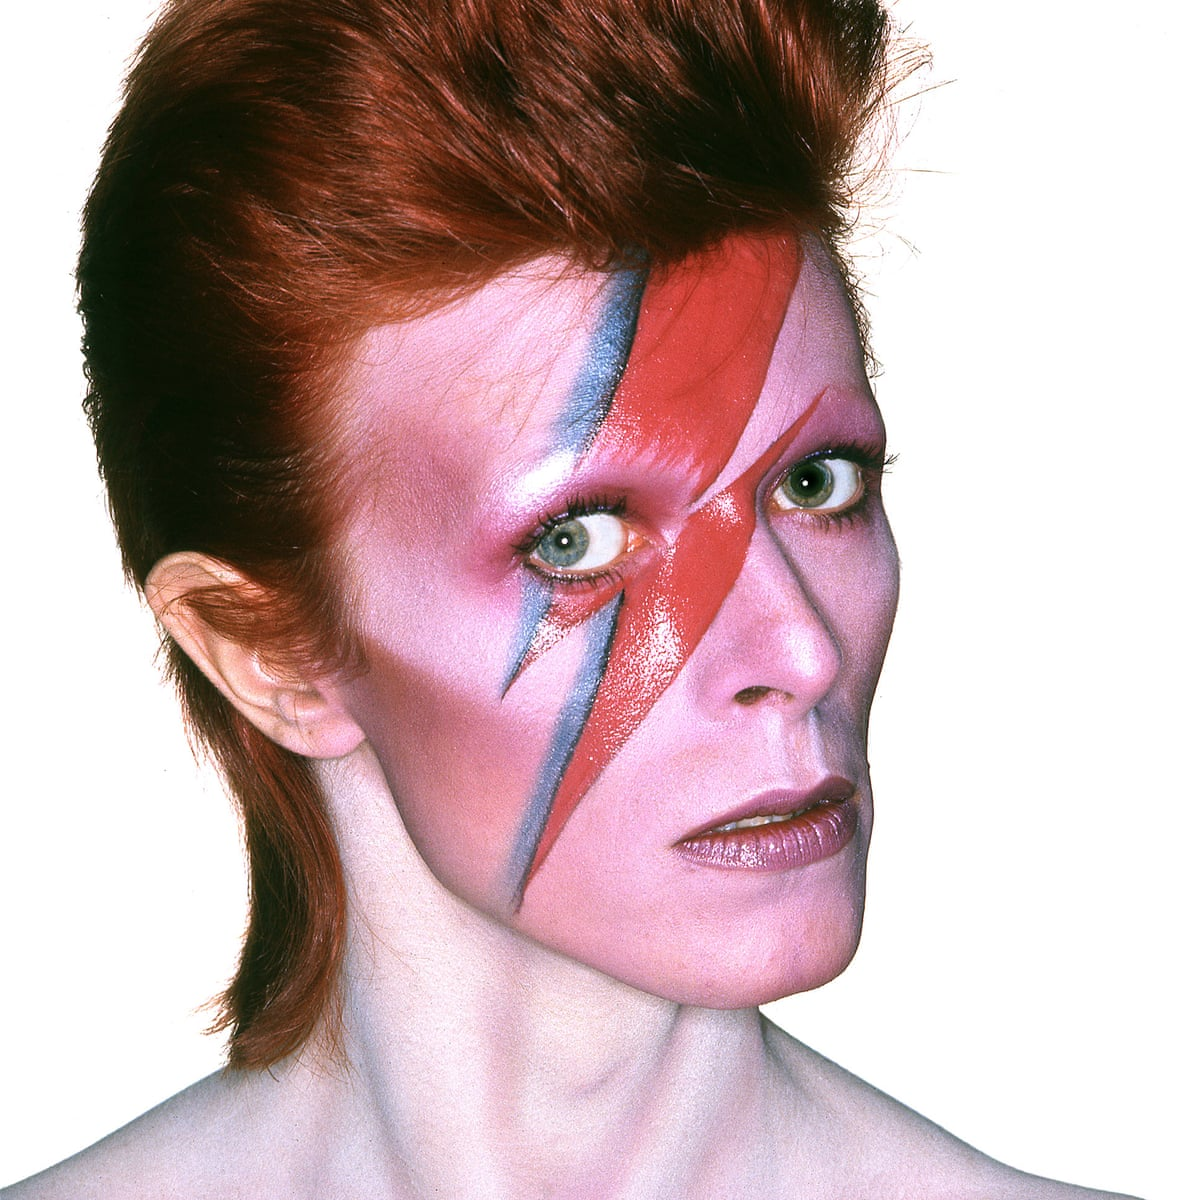 Celebrity Death Dissection: David Bowie